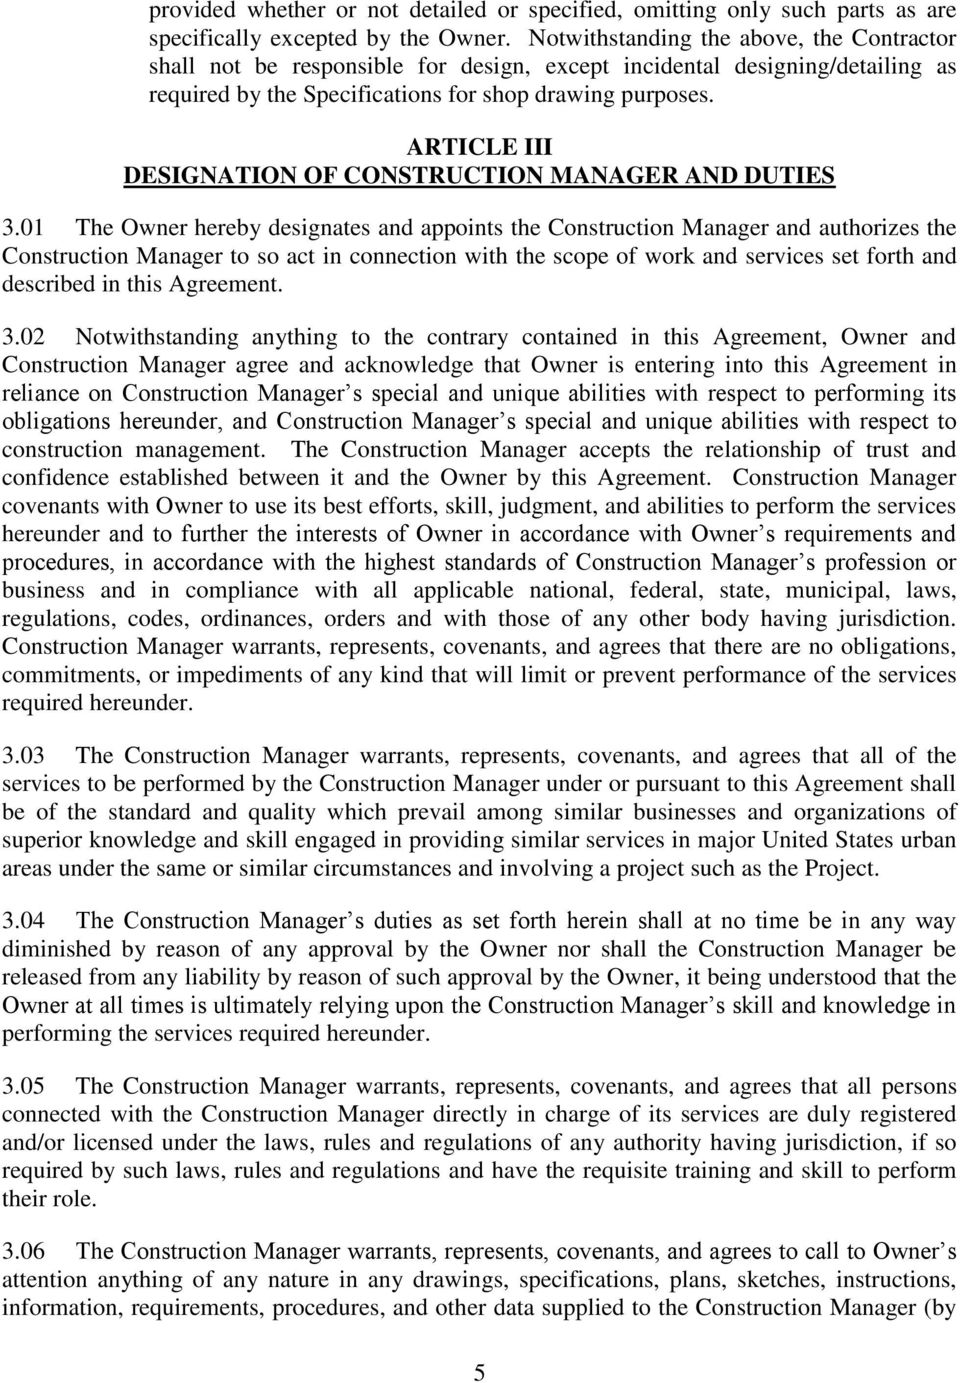 ARTICLE III DESIGNATION OF CONSTRUCTION MANAGER AND DUTIES 3.